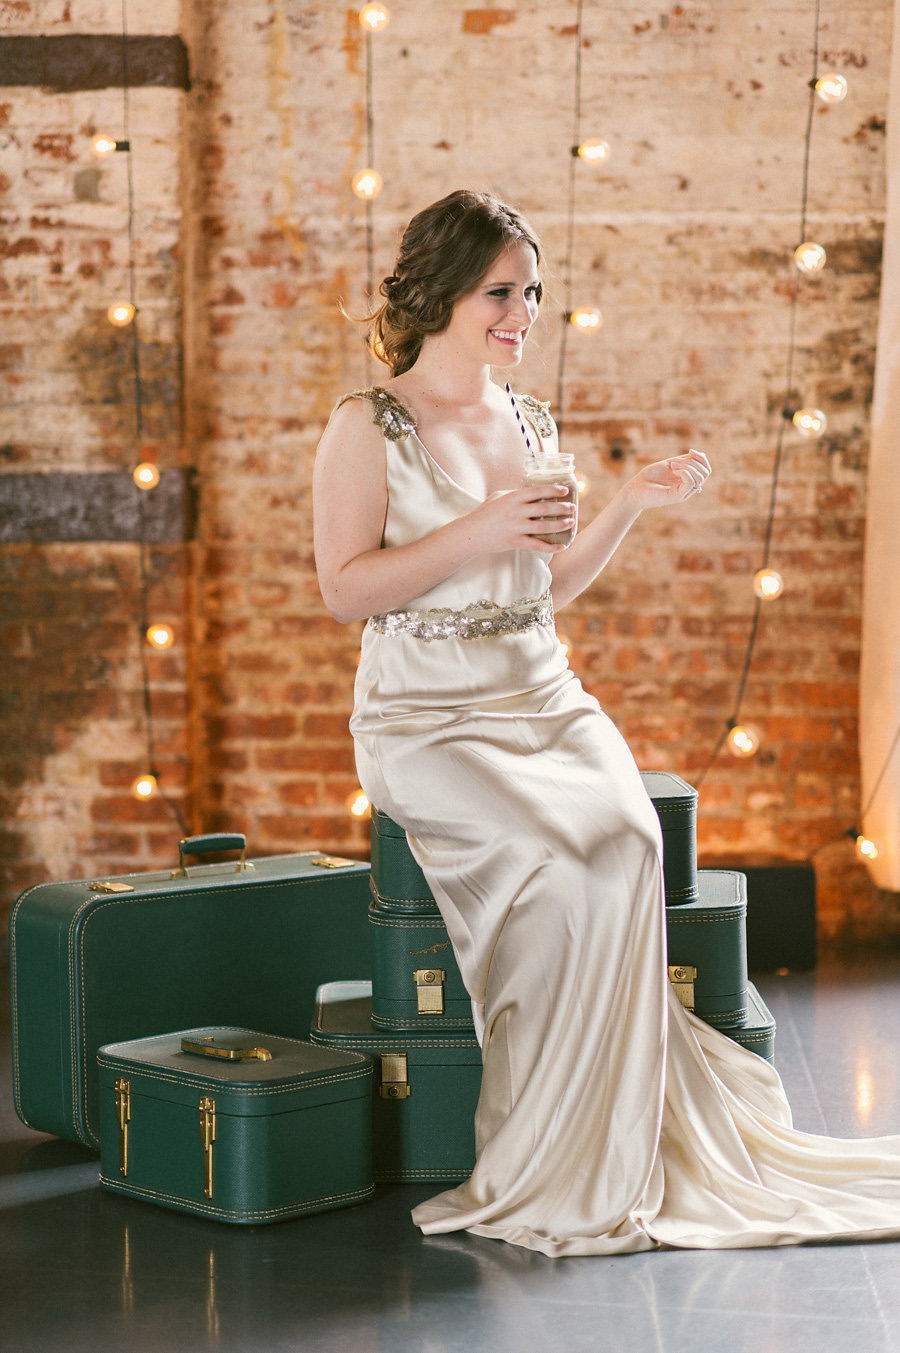 green-vintage-suitcases-string-lights-bride-playful